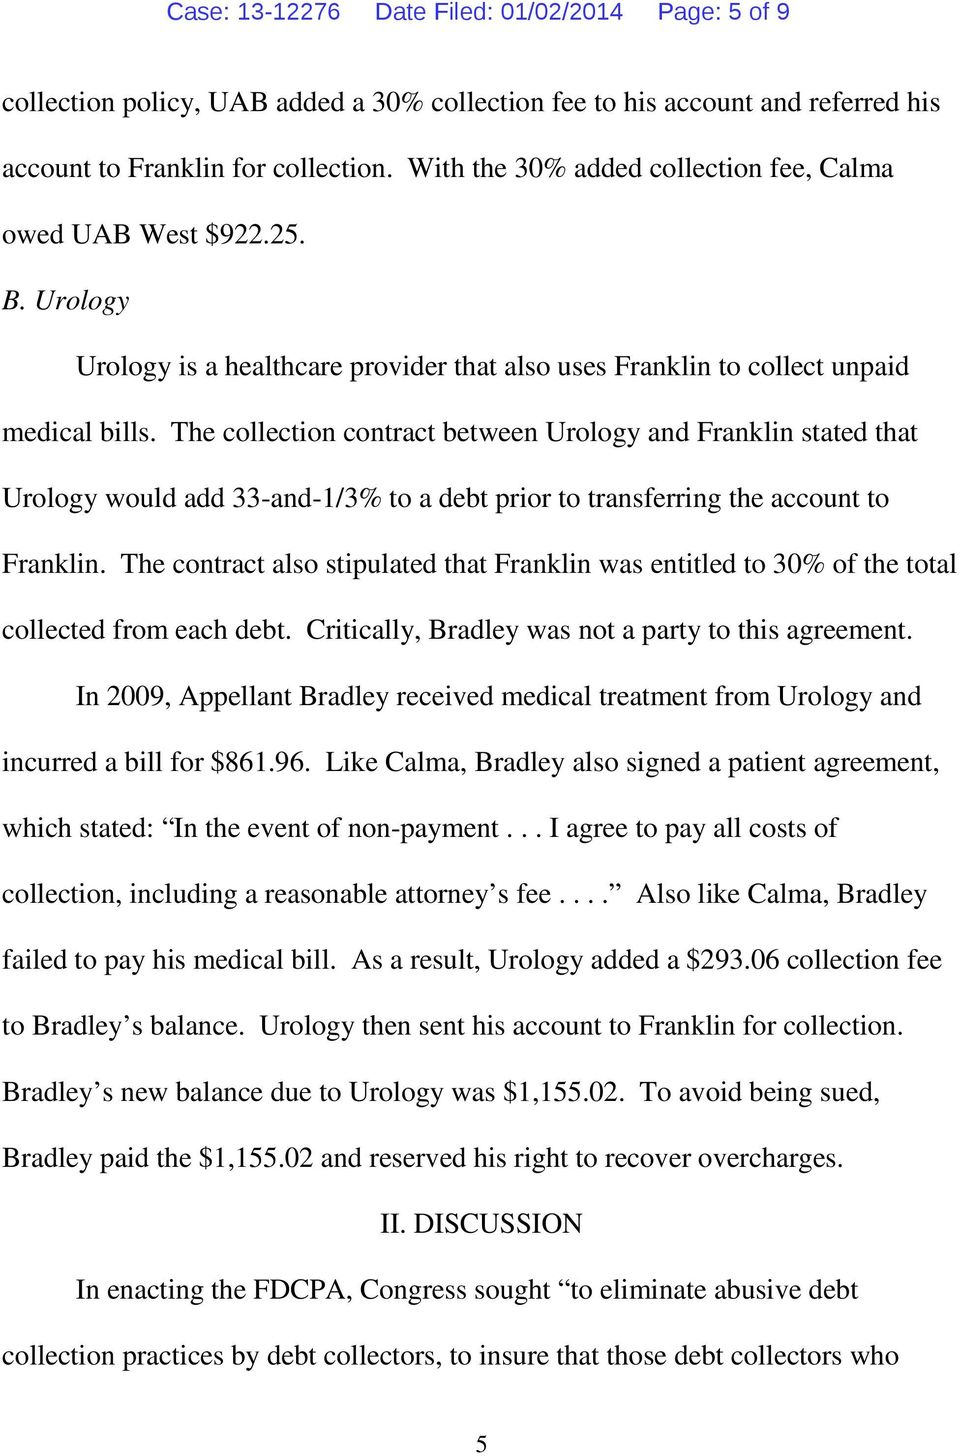 The collection contract between Urology and Franklin stated that Urology would add 33-and-1/3% to a debt prior to transferring the account to Franklin.